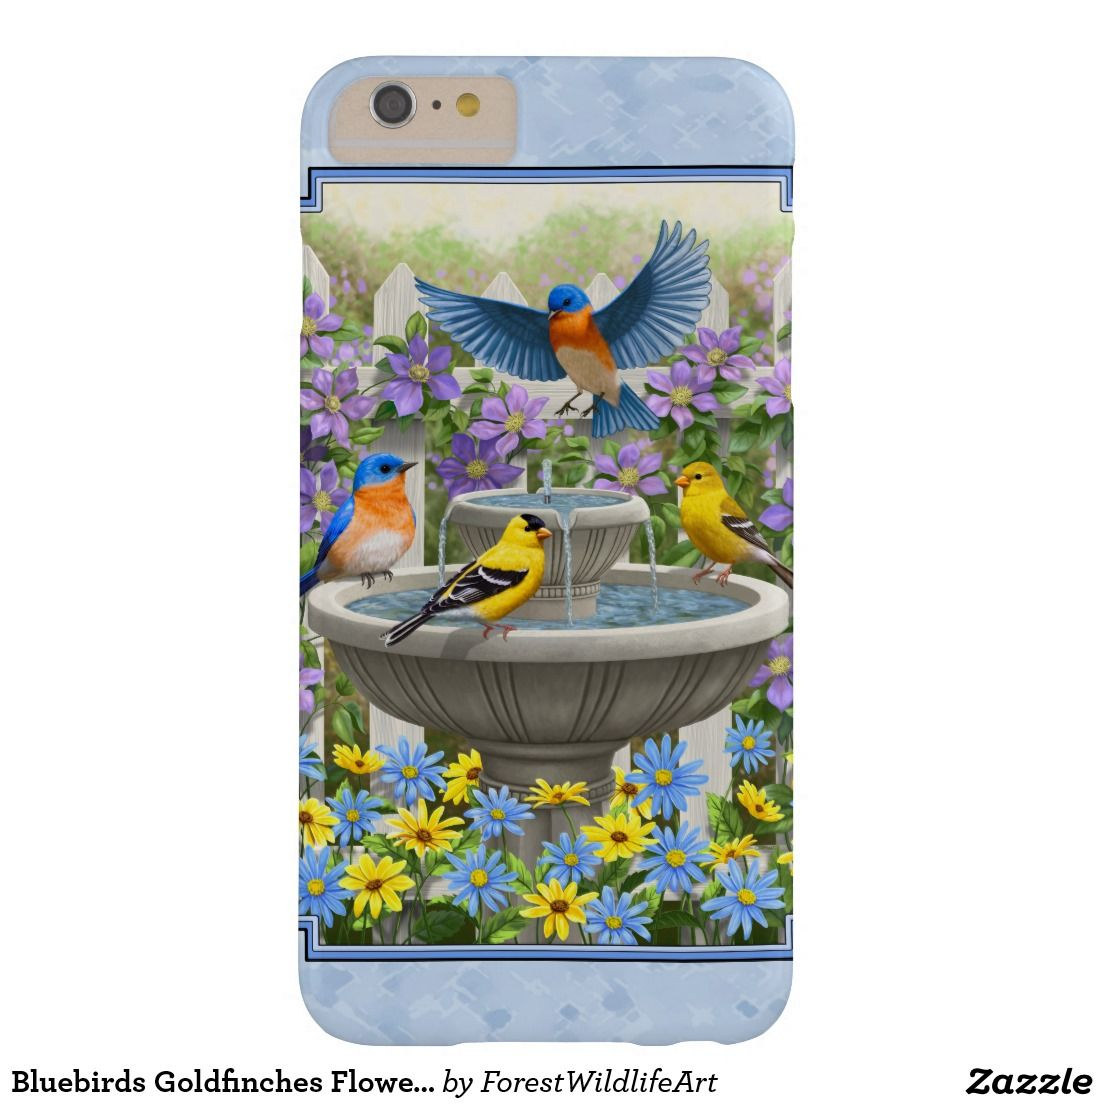 Bluebirds Goldfinches Flower Garden Fountain Blue Barely There iPhone 6 Plus Case